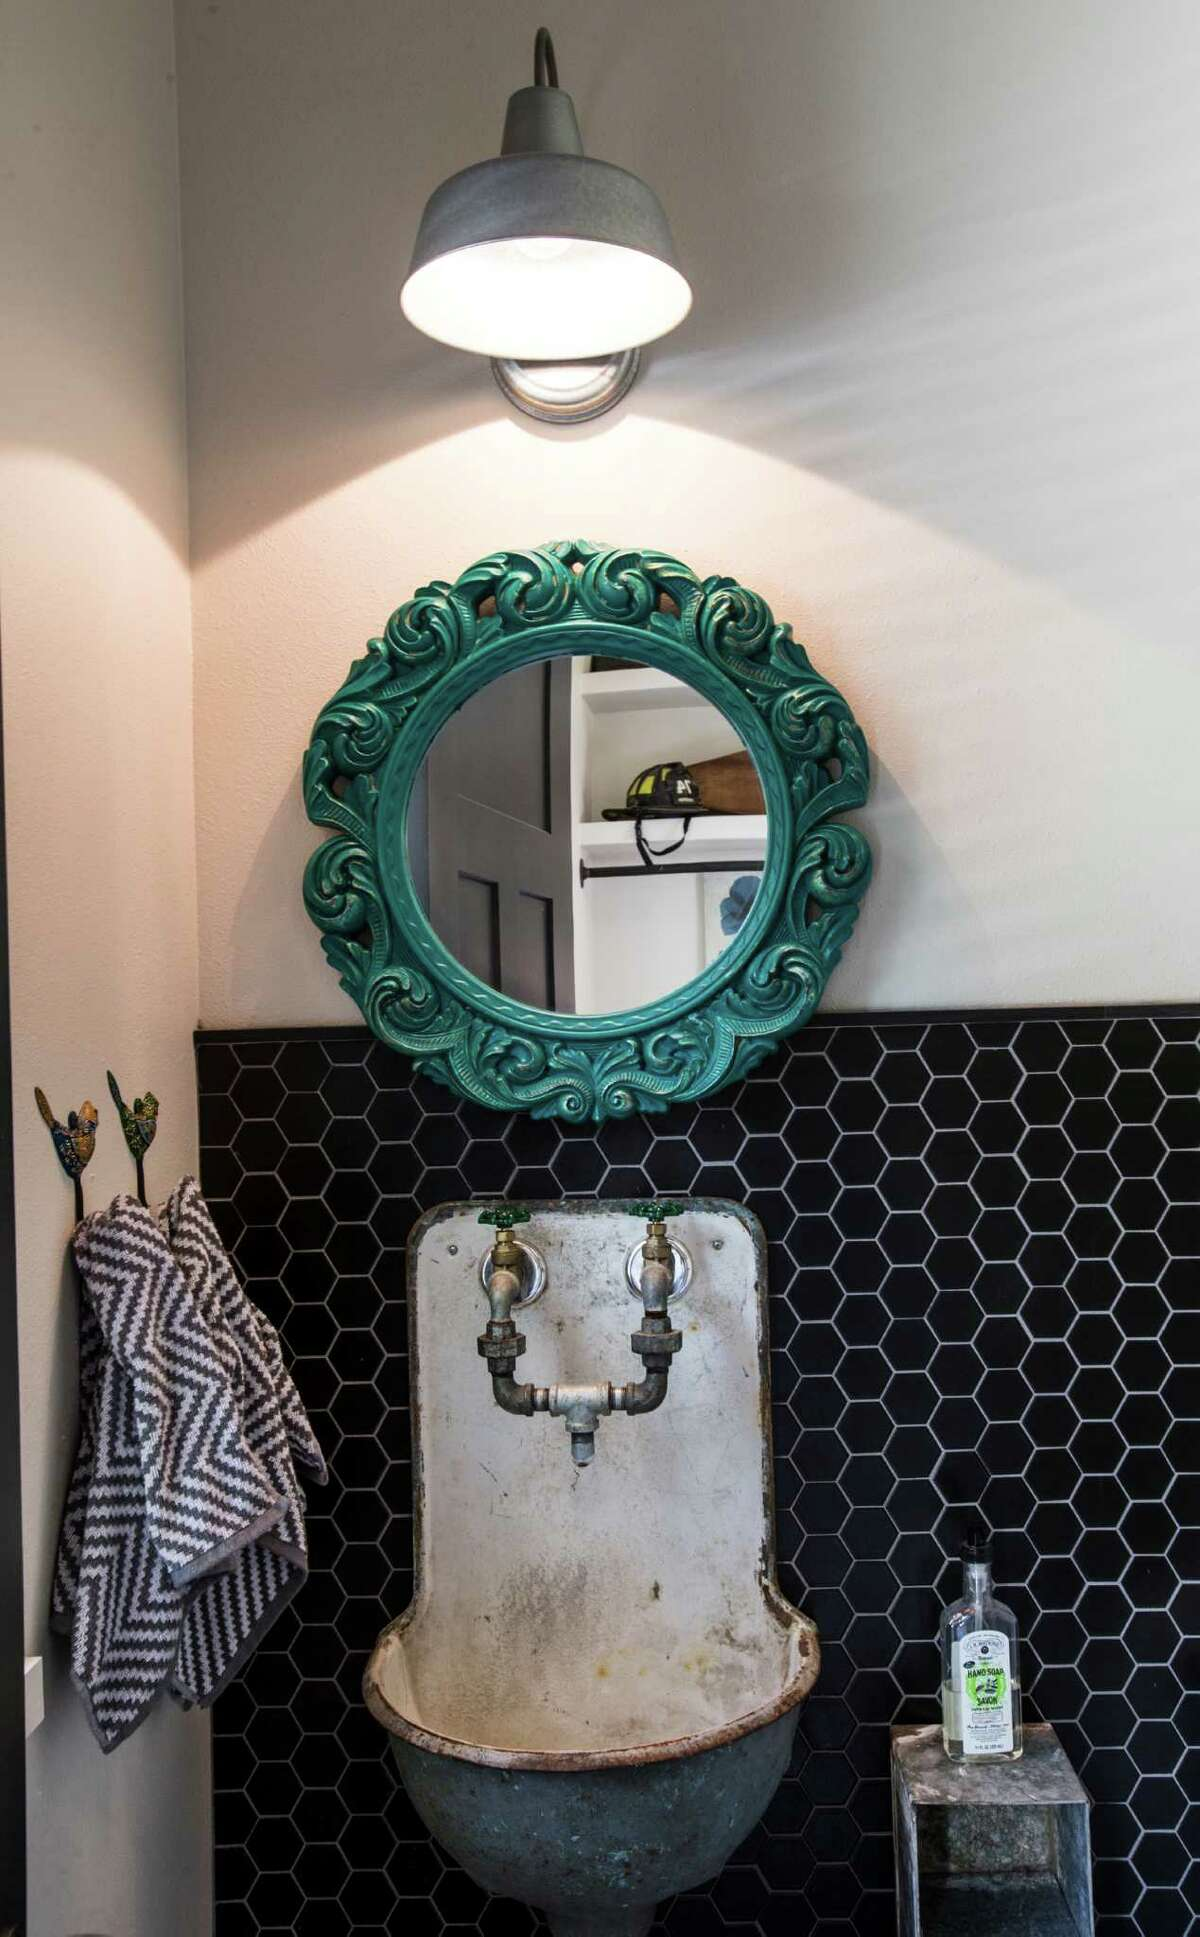 ANTIQUES: An antique sink and mirror play off sleek black tiles in this powder room.